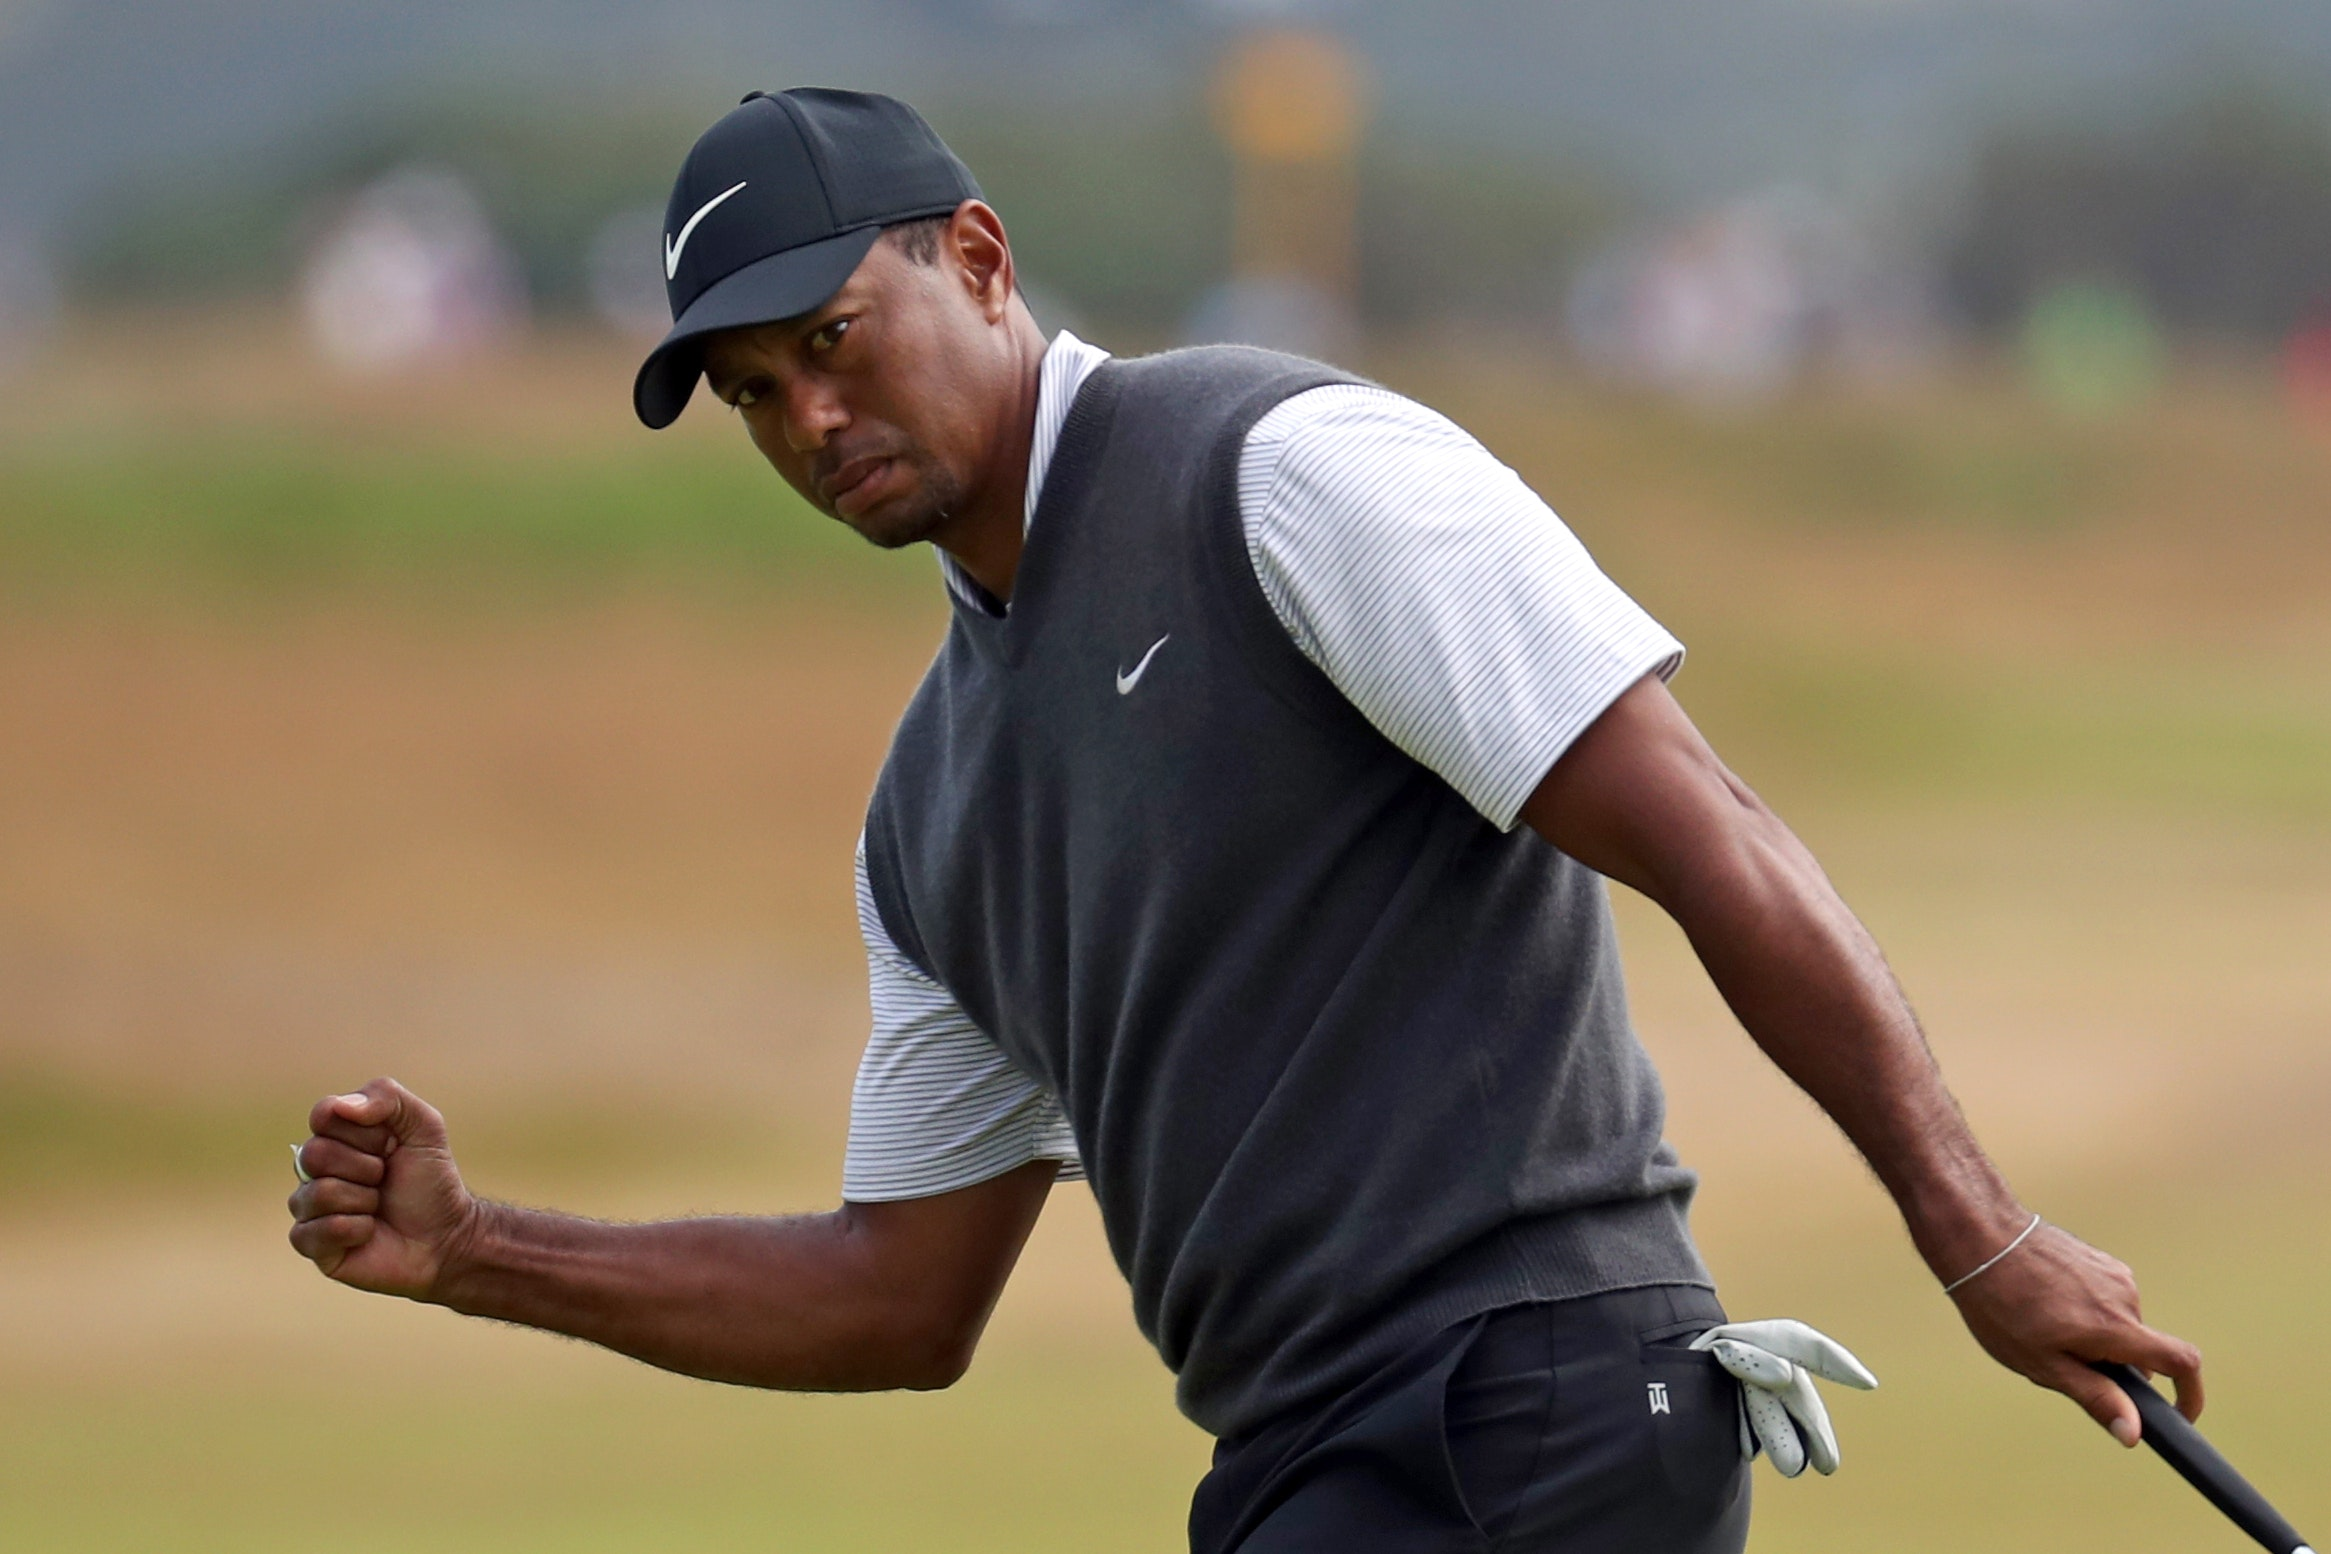 Tiger Woods won for the first time since 2013 in the Tour Championship